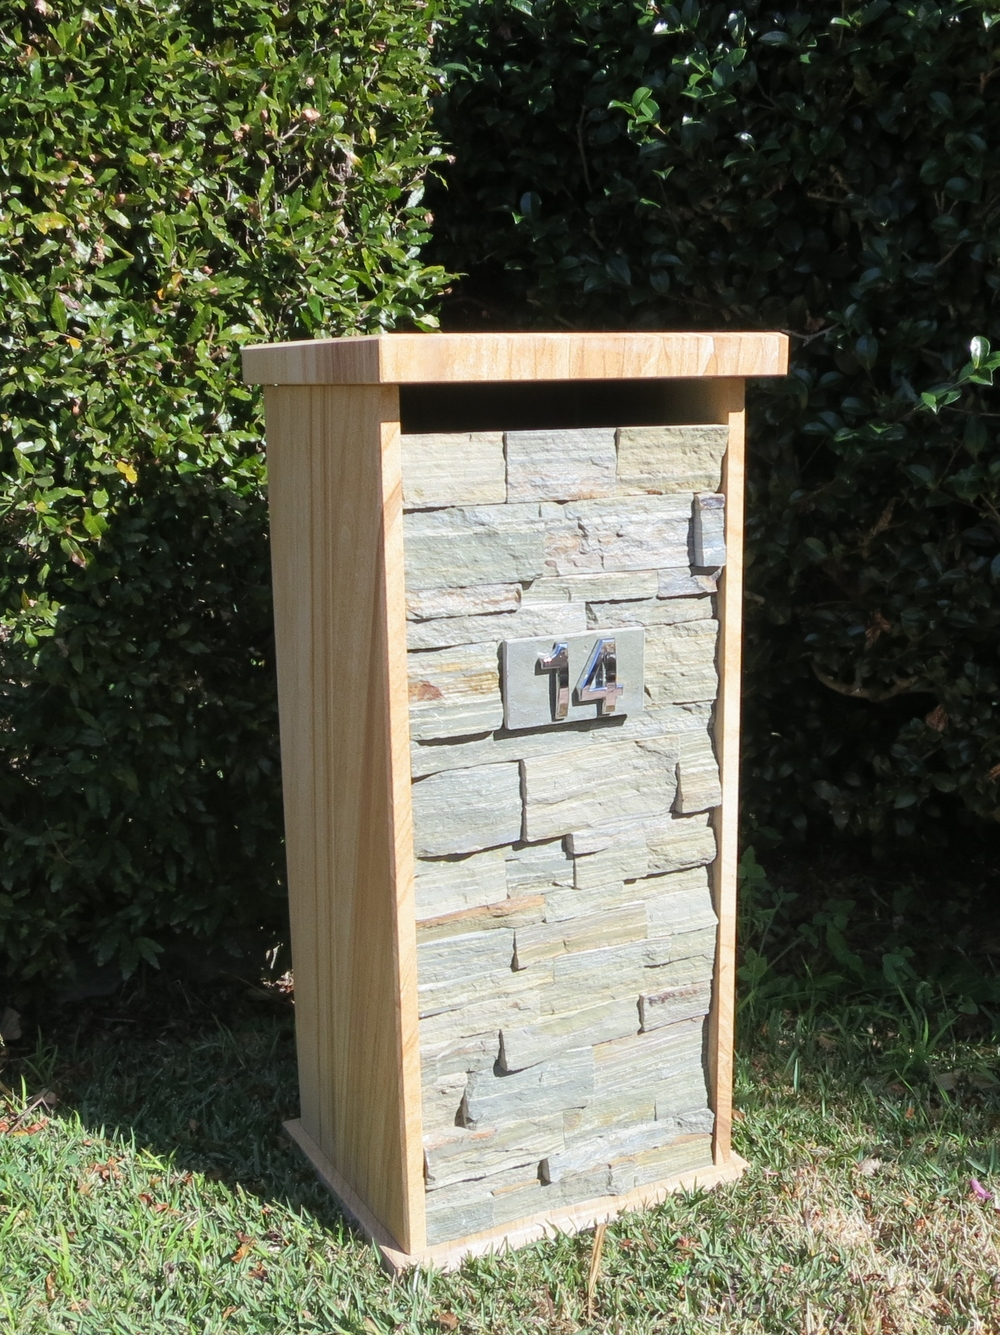 14. Custom made letterbox one pc unit pick up from store only (60kg unit), outside size 400x360x850mm Price $599